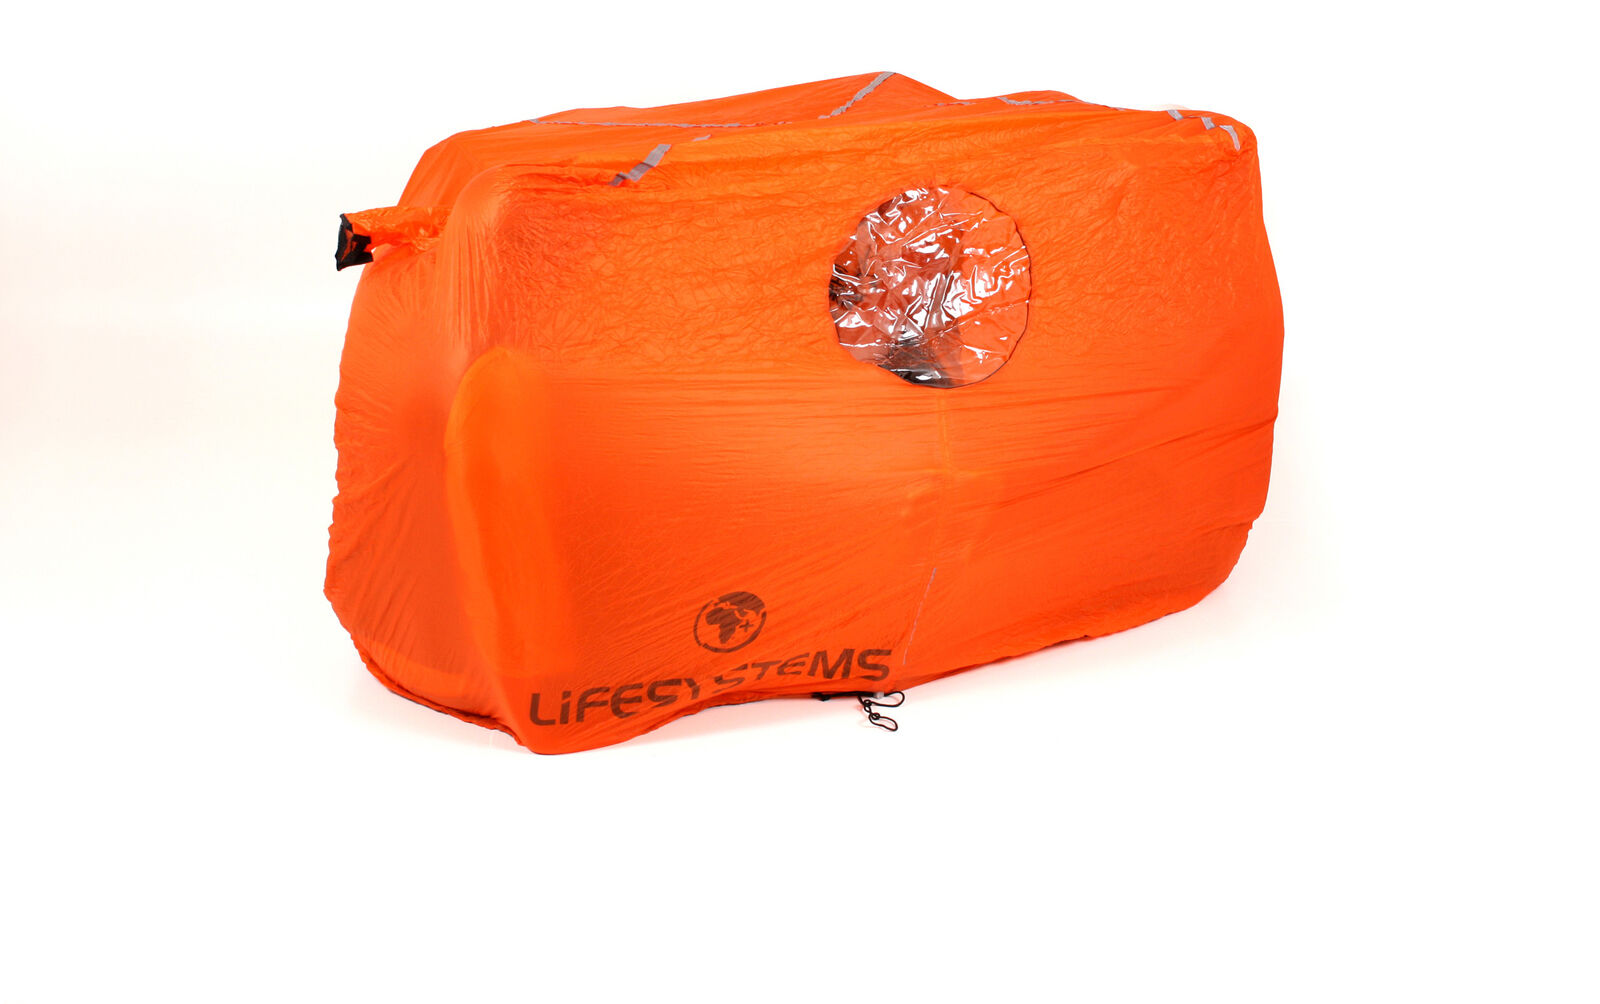 Lifesystems 4-6 person Survival Shelter